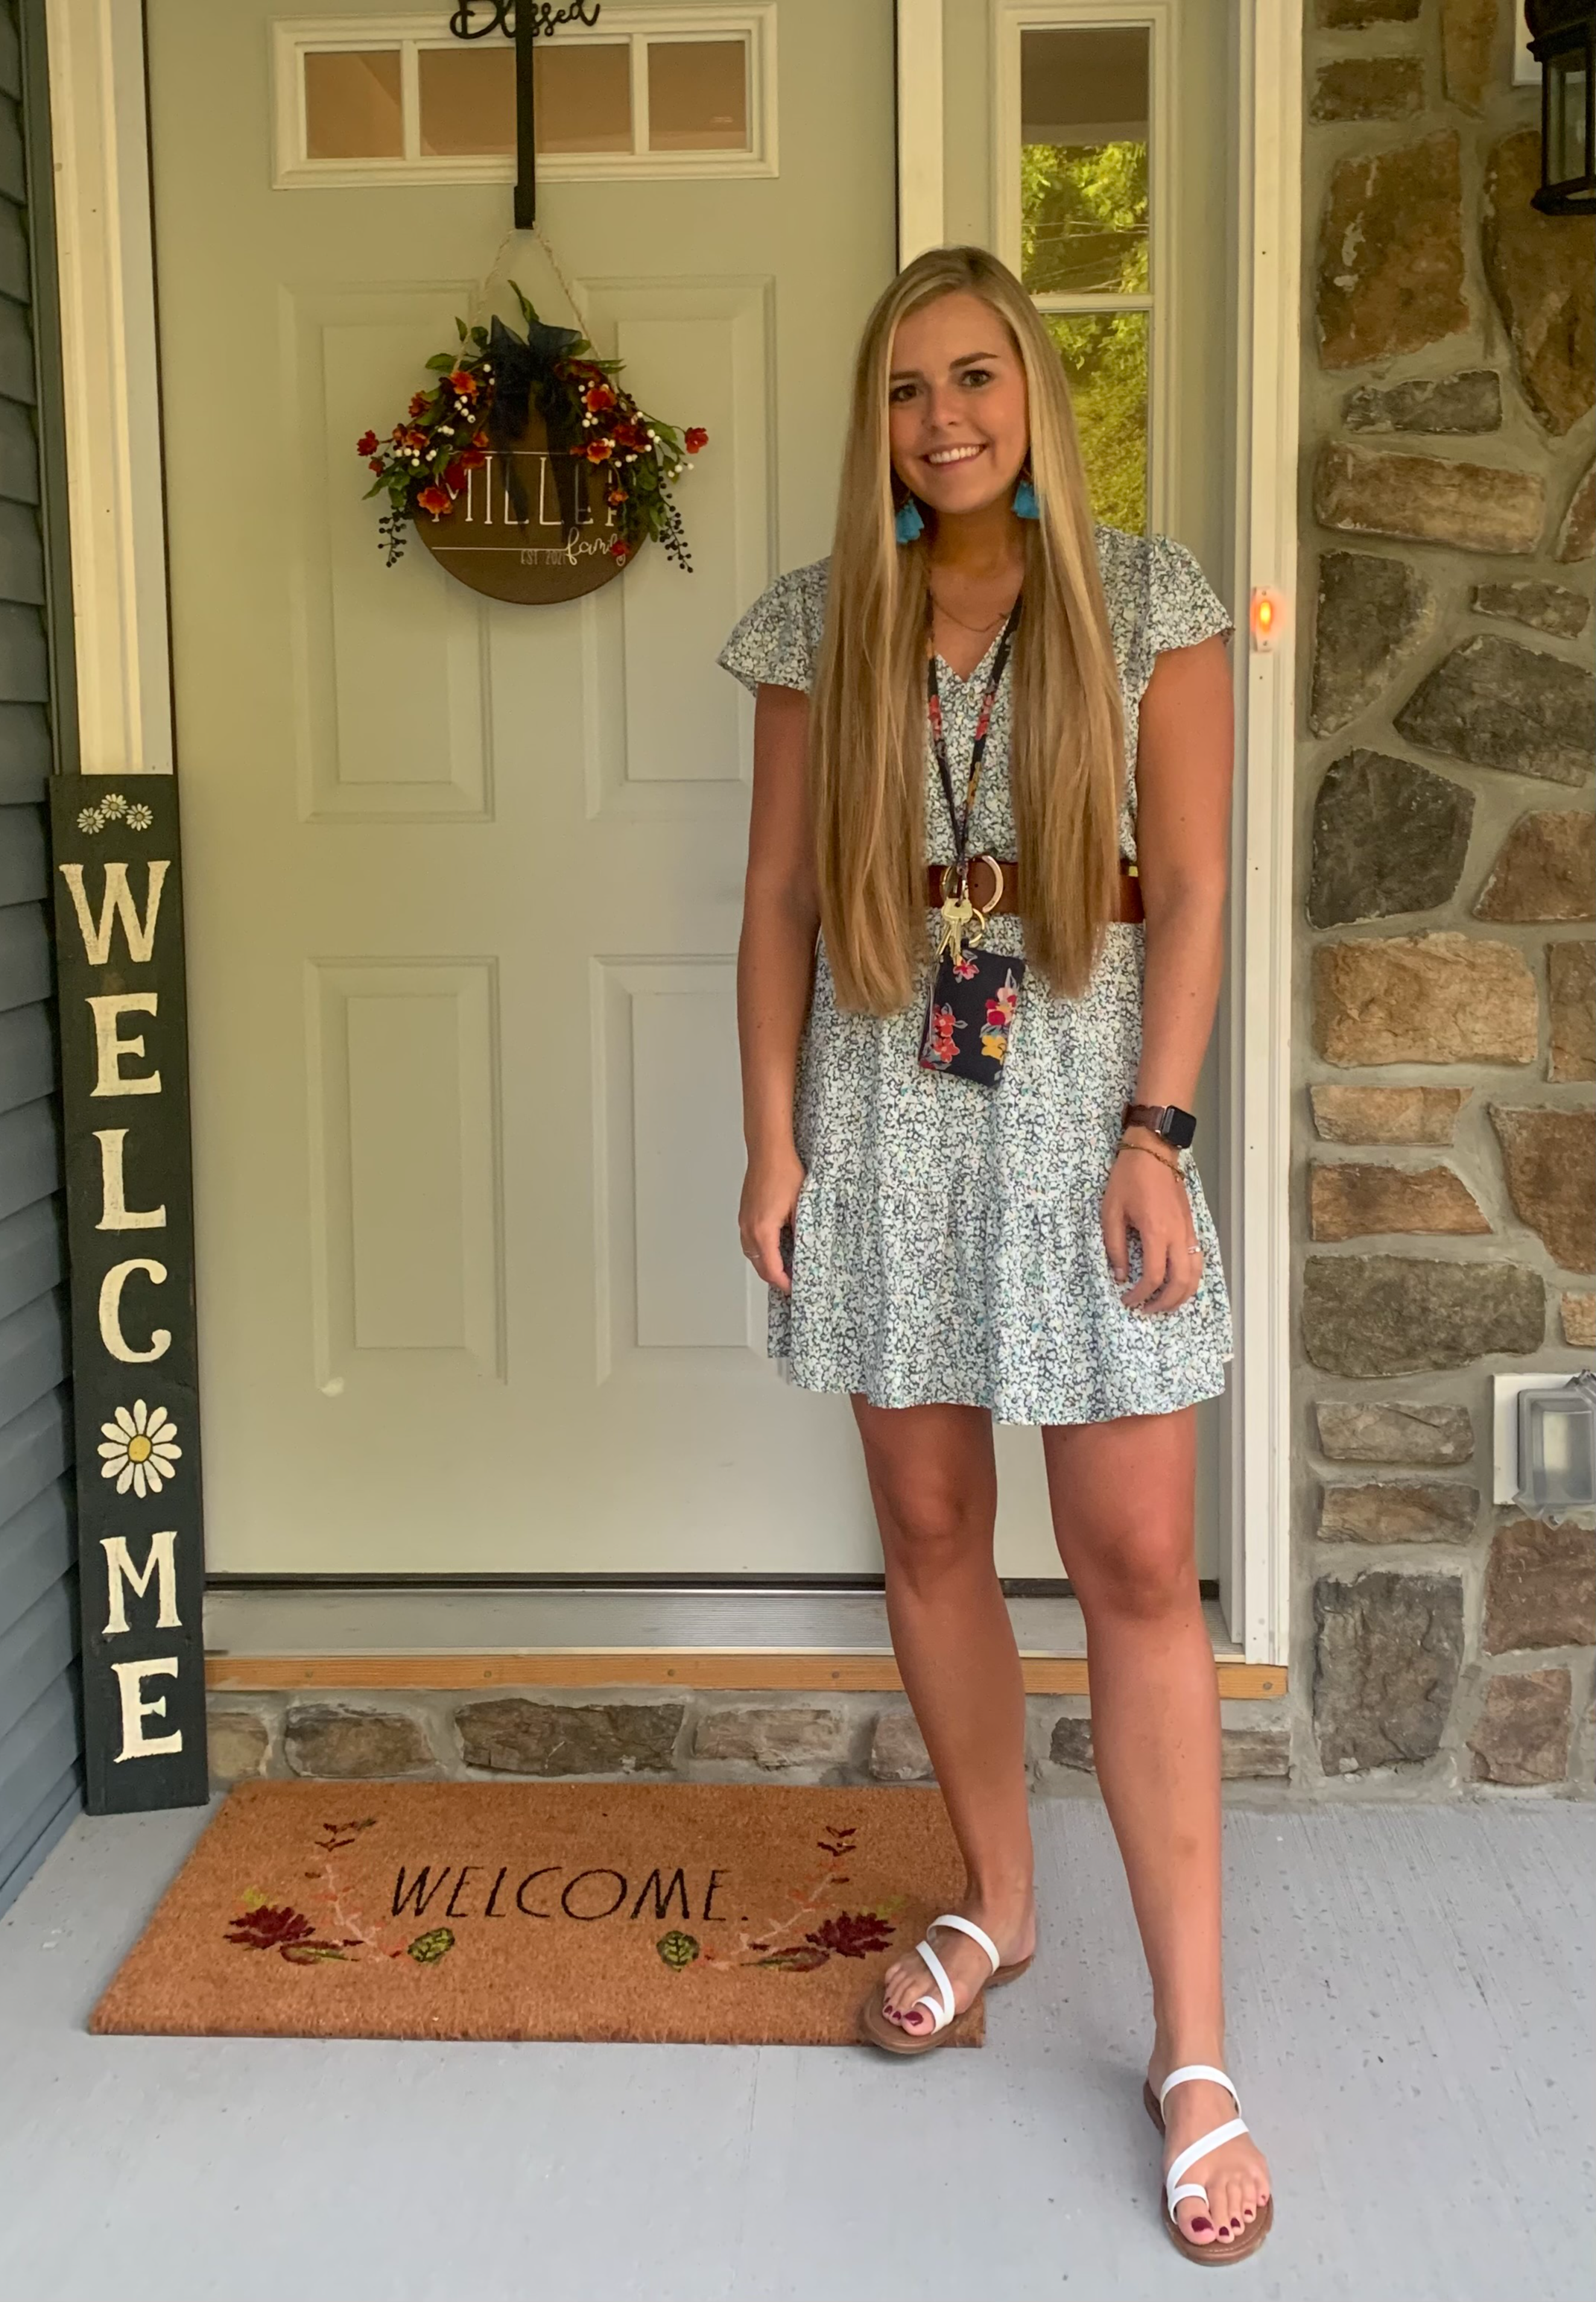 Mrs. Miller First Day of School Picture